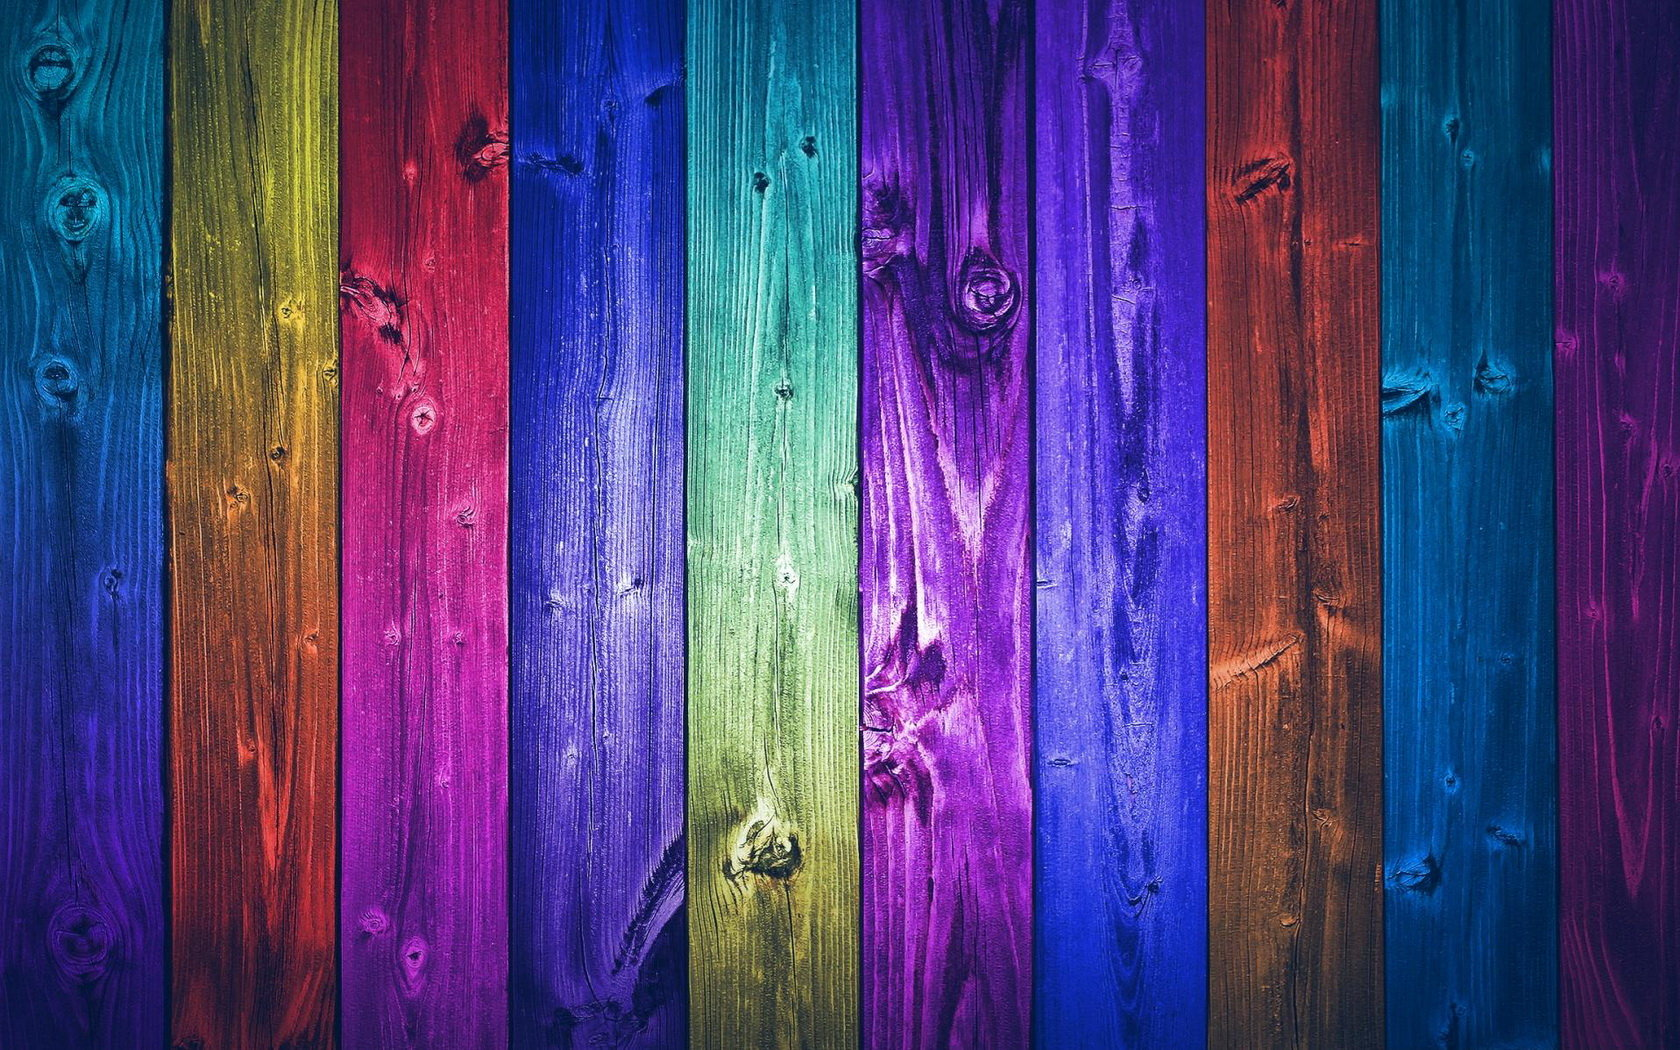 Free Wood high quality background ID:345944 for hd 1680x1050 desktop